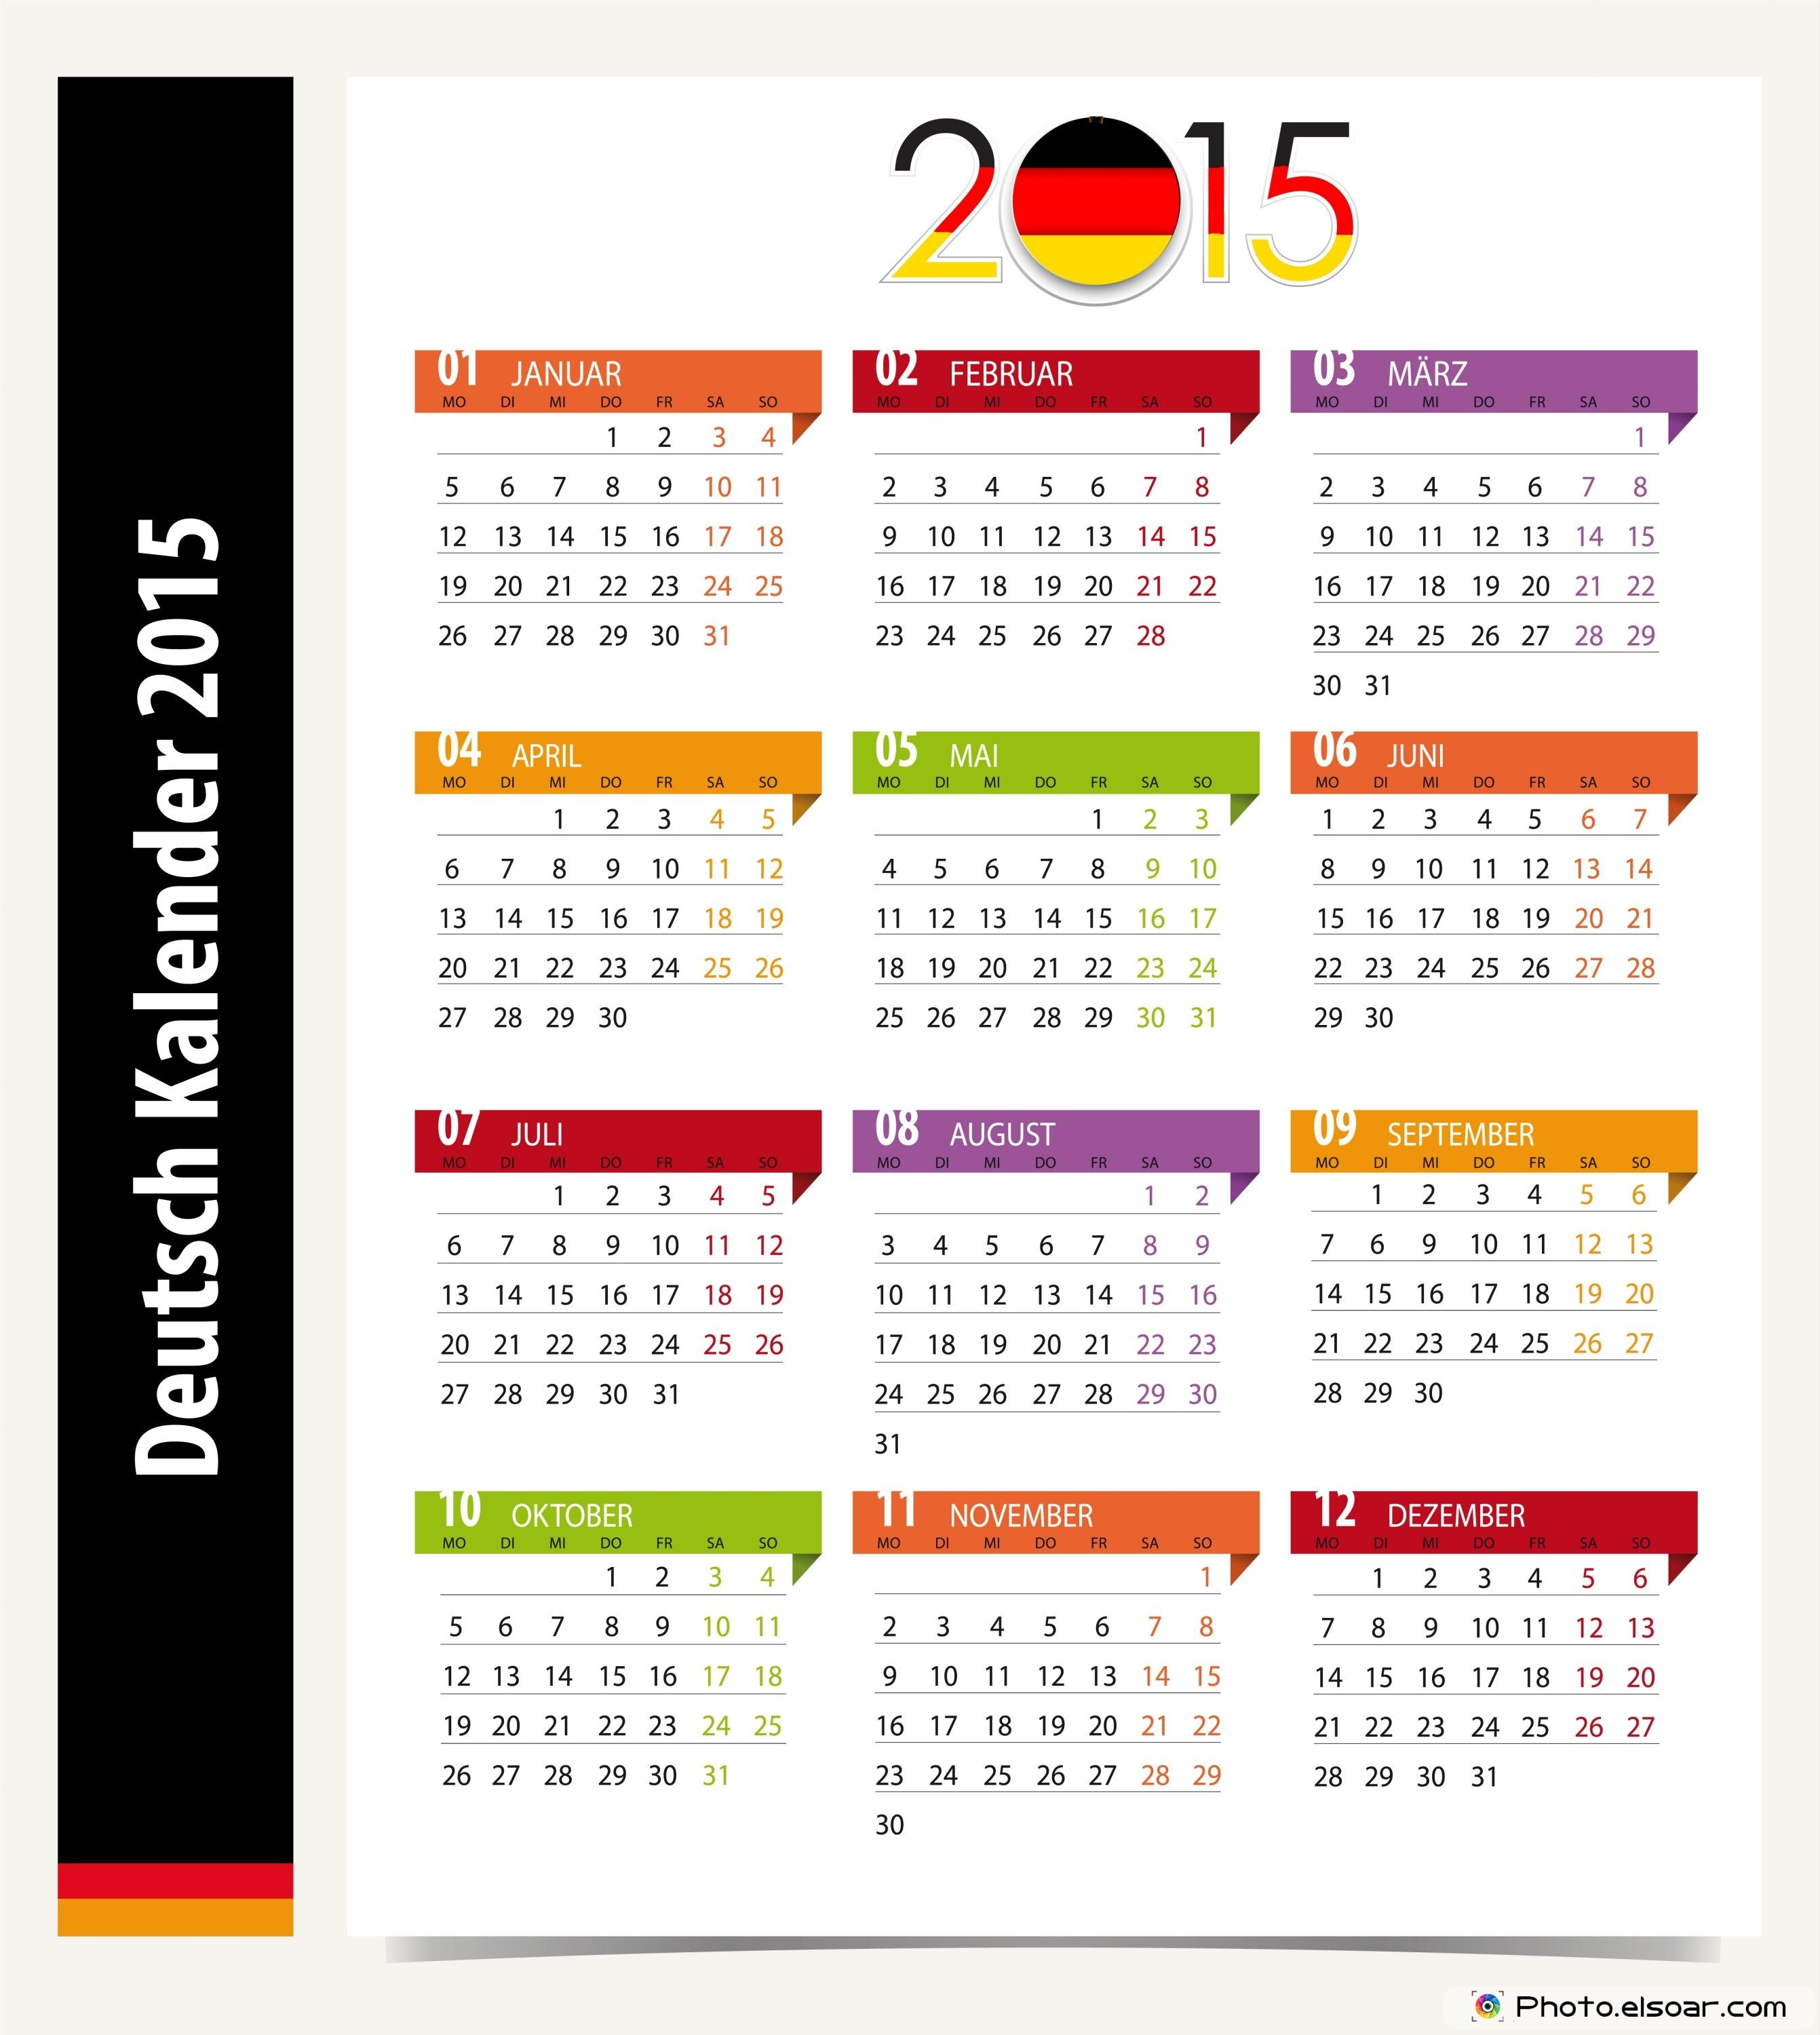 Deutsche Kalender 2015 Kostenlos Downloaden German Calendars